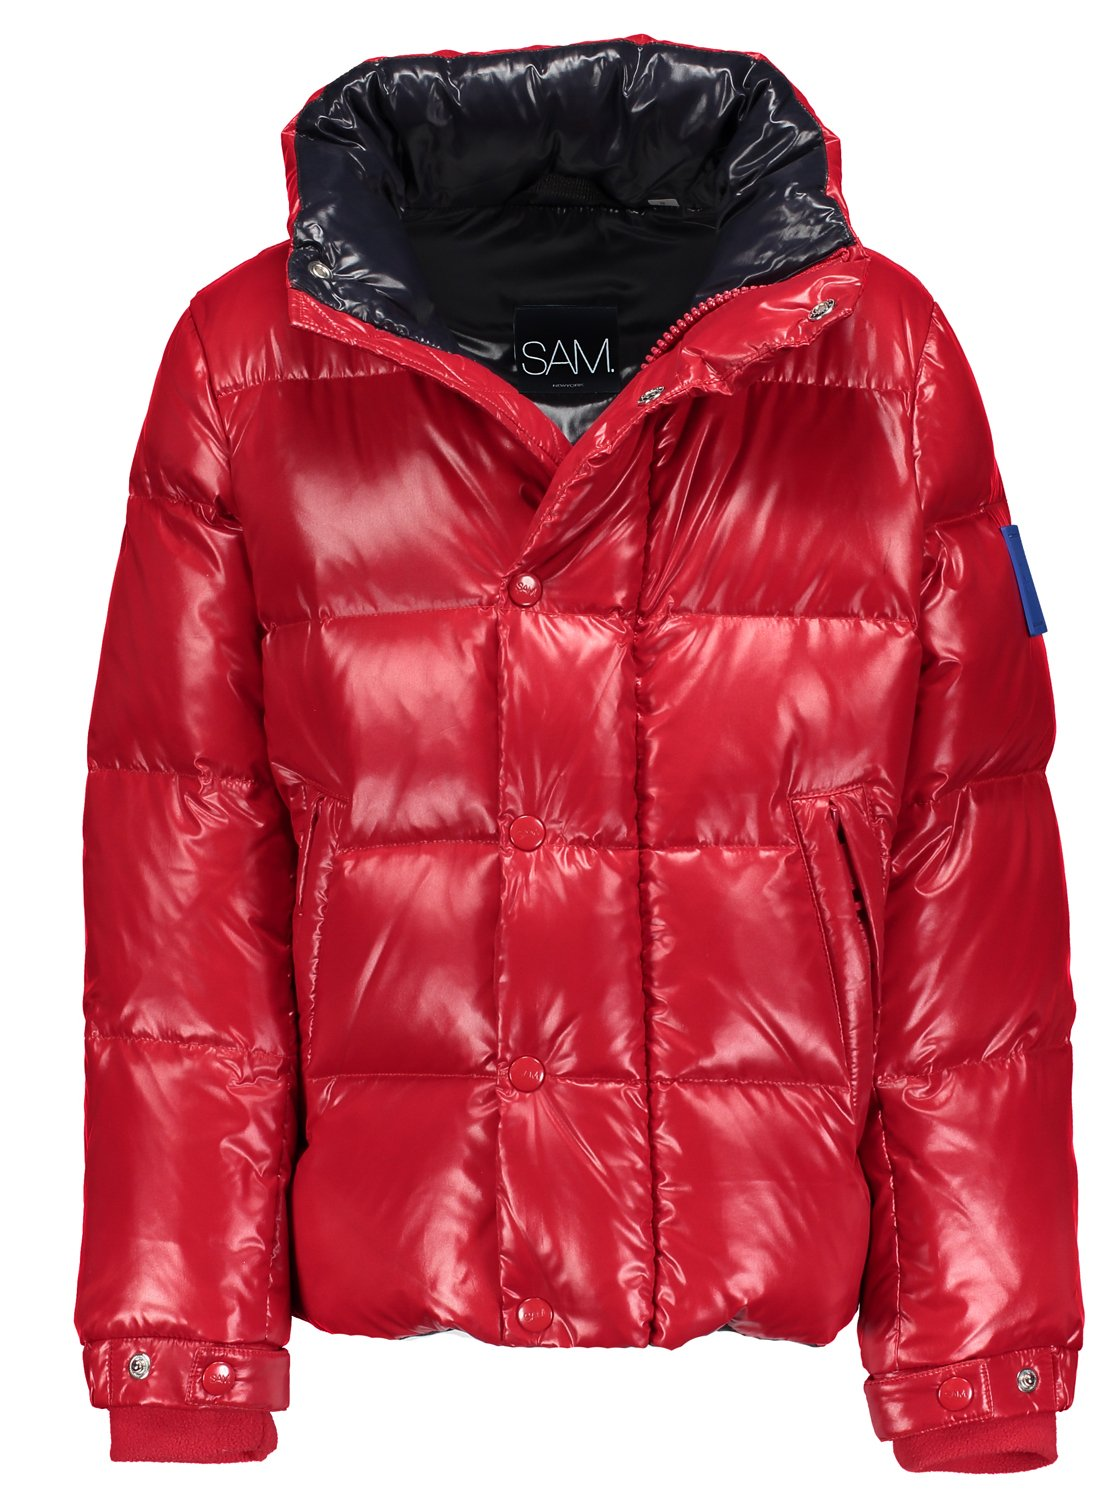 TODDLER BOYS VAIL TODDLER BOYS VAIL - SAM. New York Sam nyc jacket